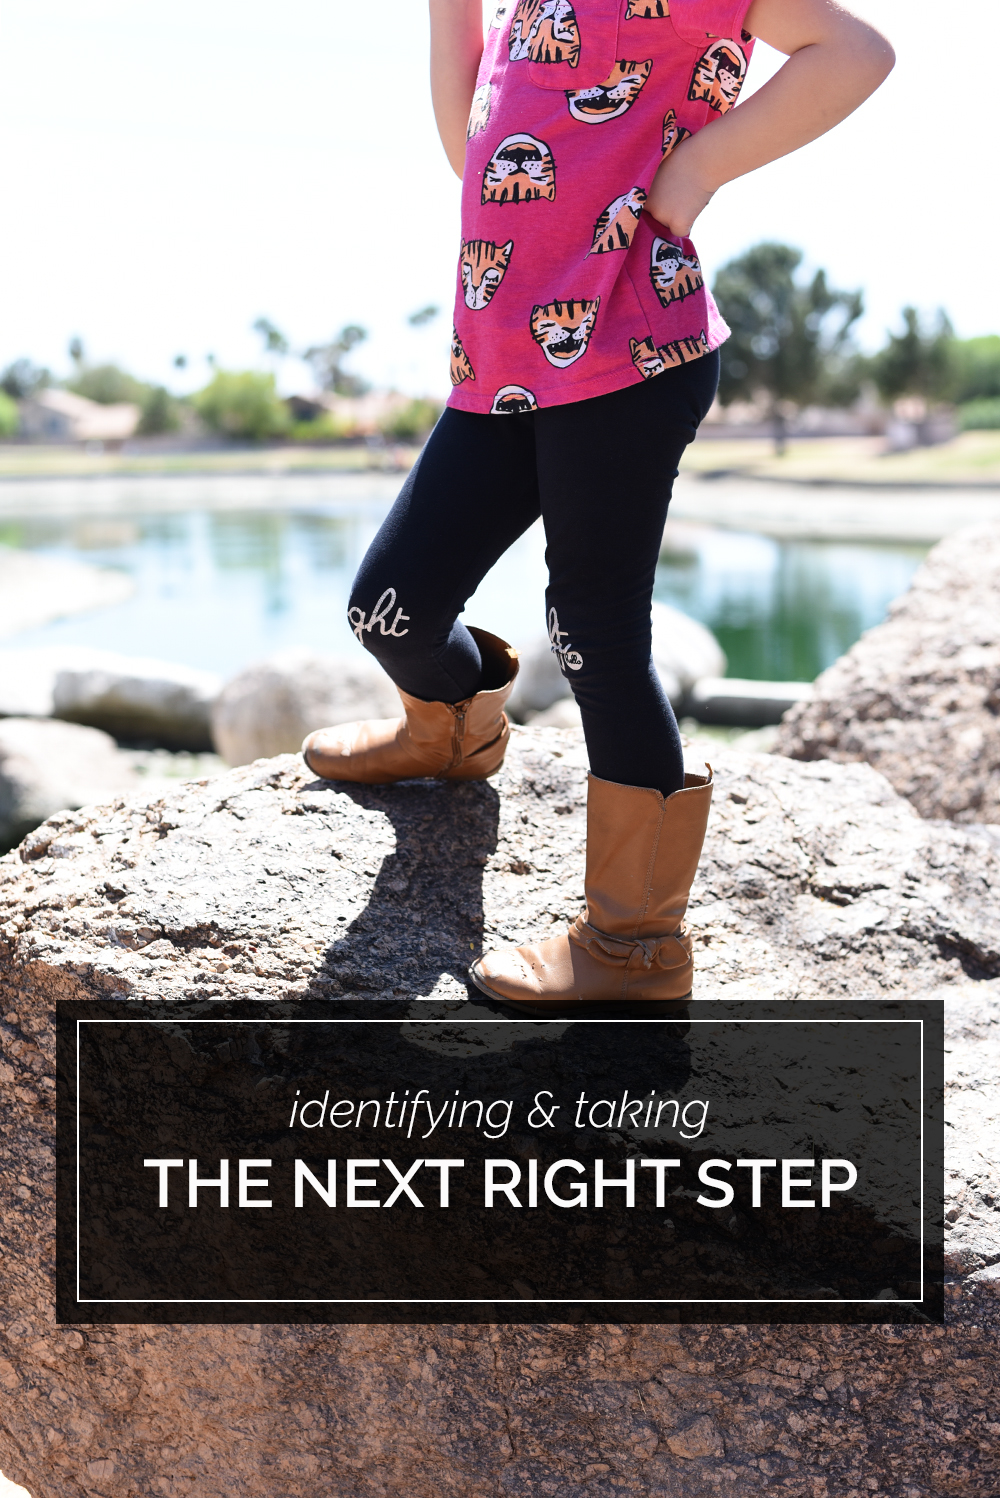 A step by step guide for identifying and taking your next right step